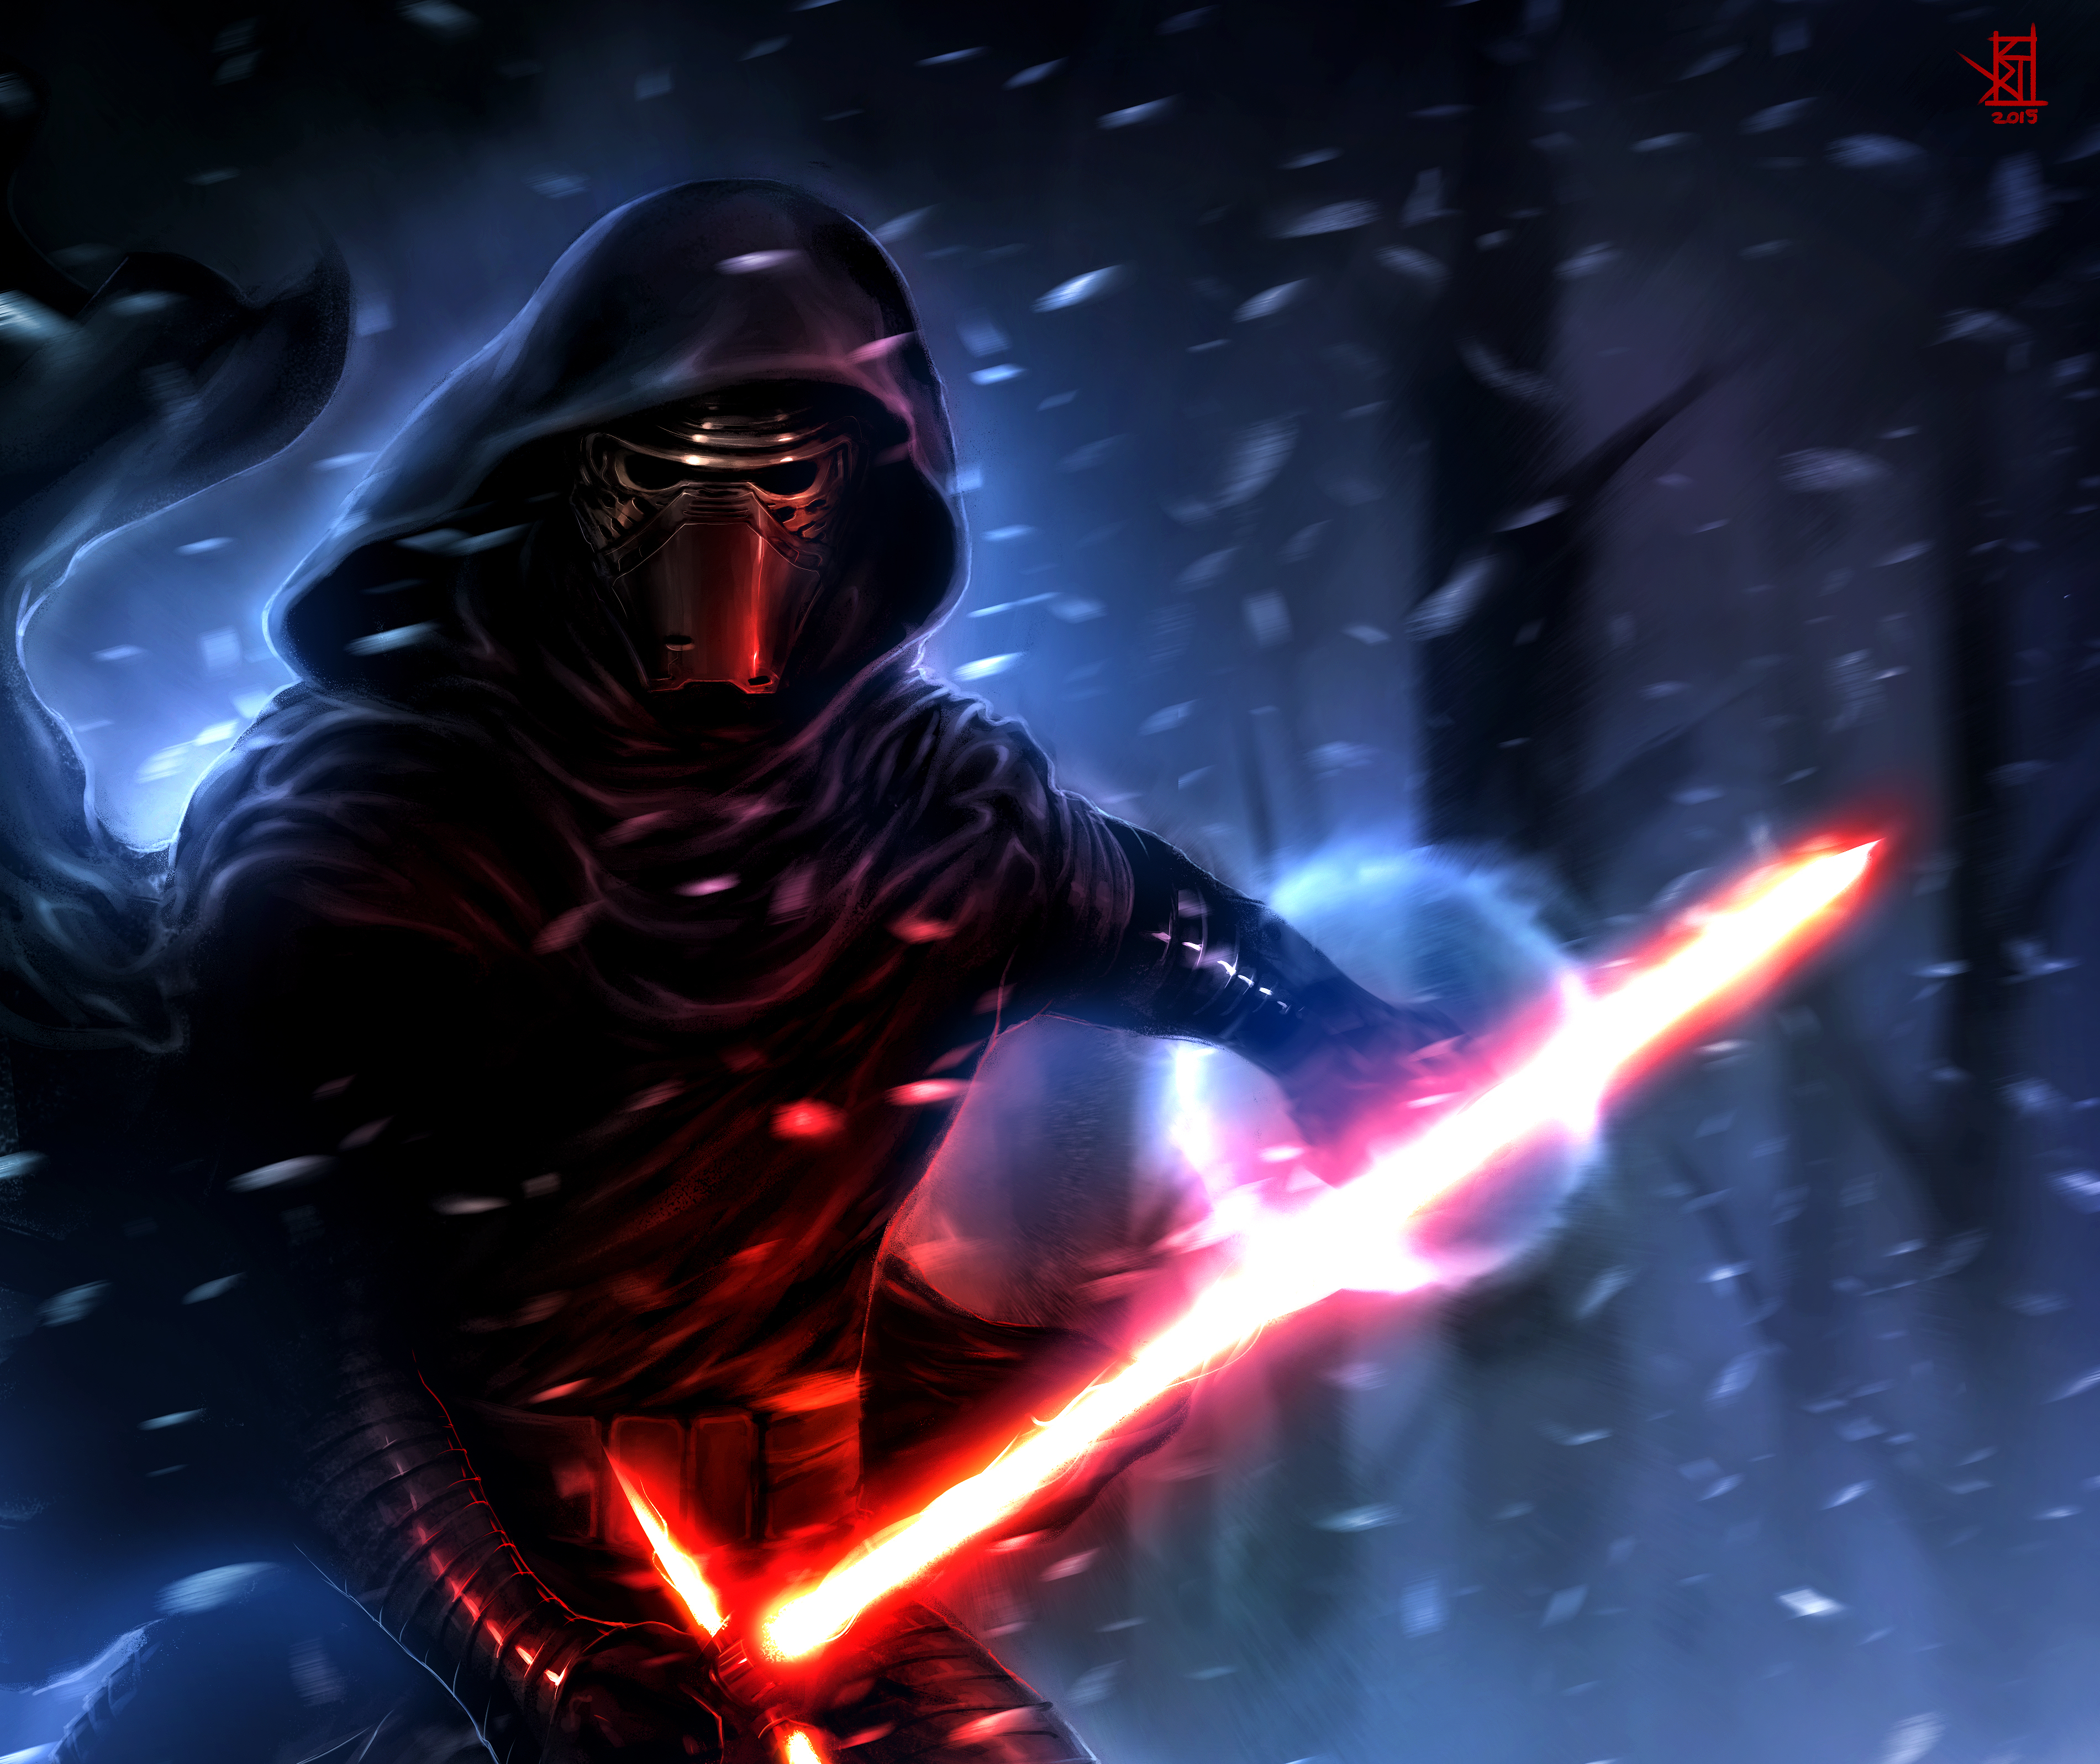 Star Wars Episode Vii The Force Awakens Hd Backgrounds Pictures Images